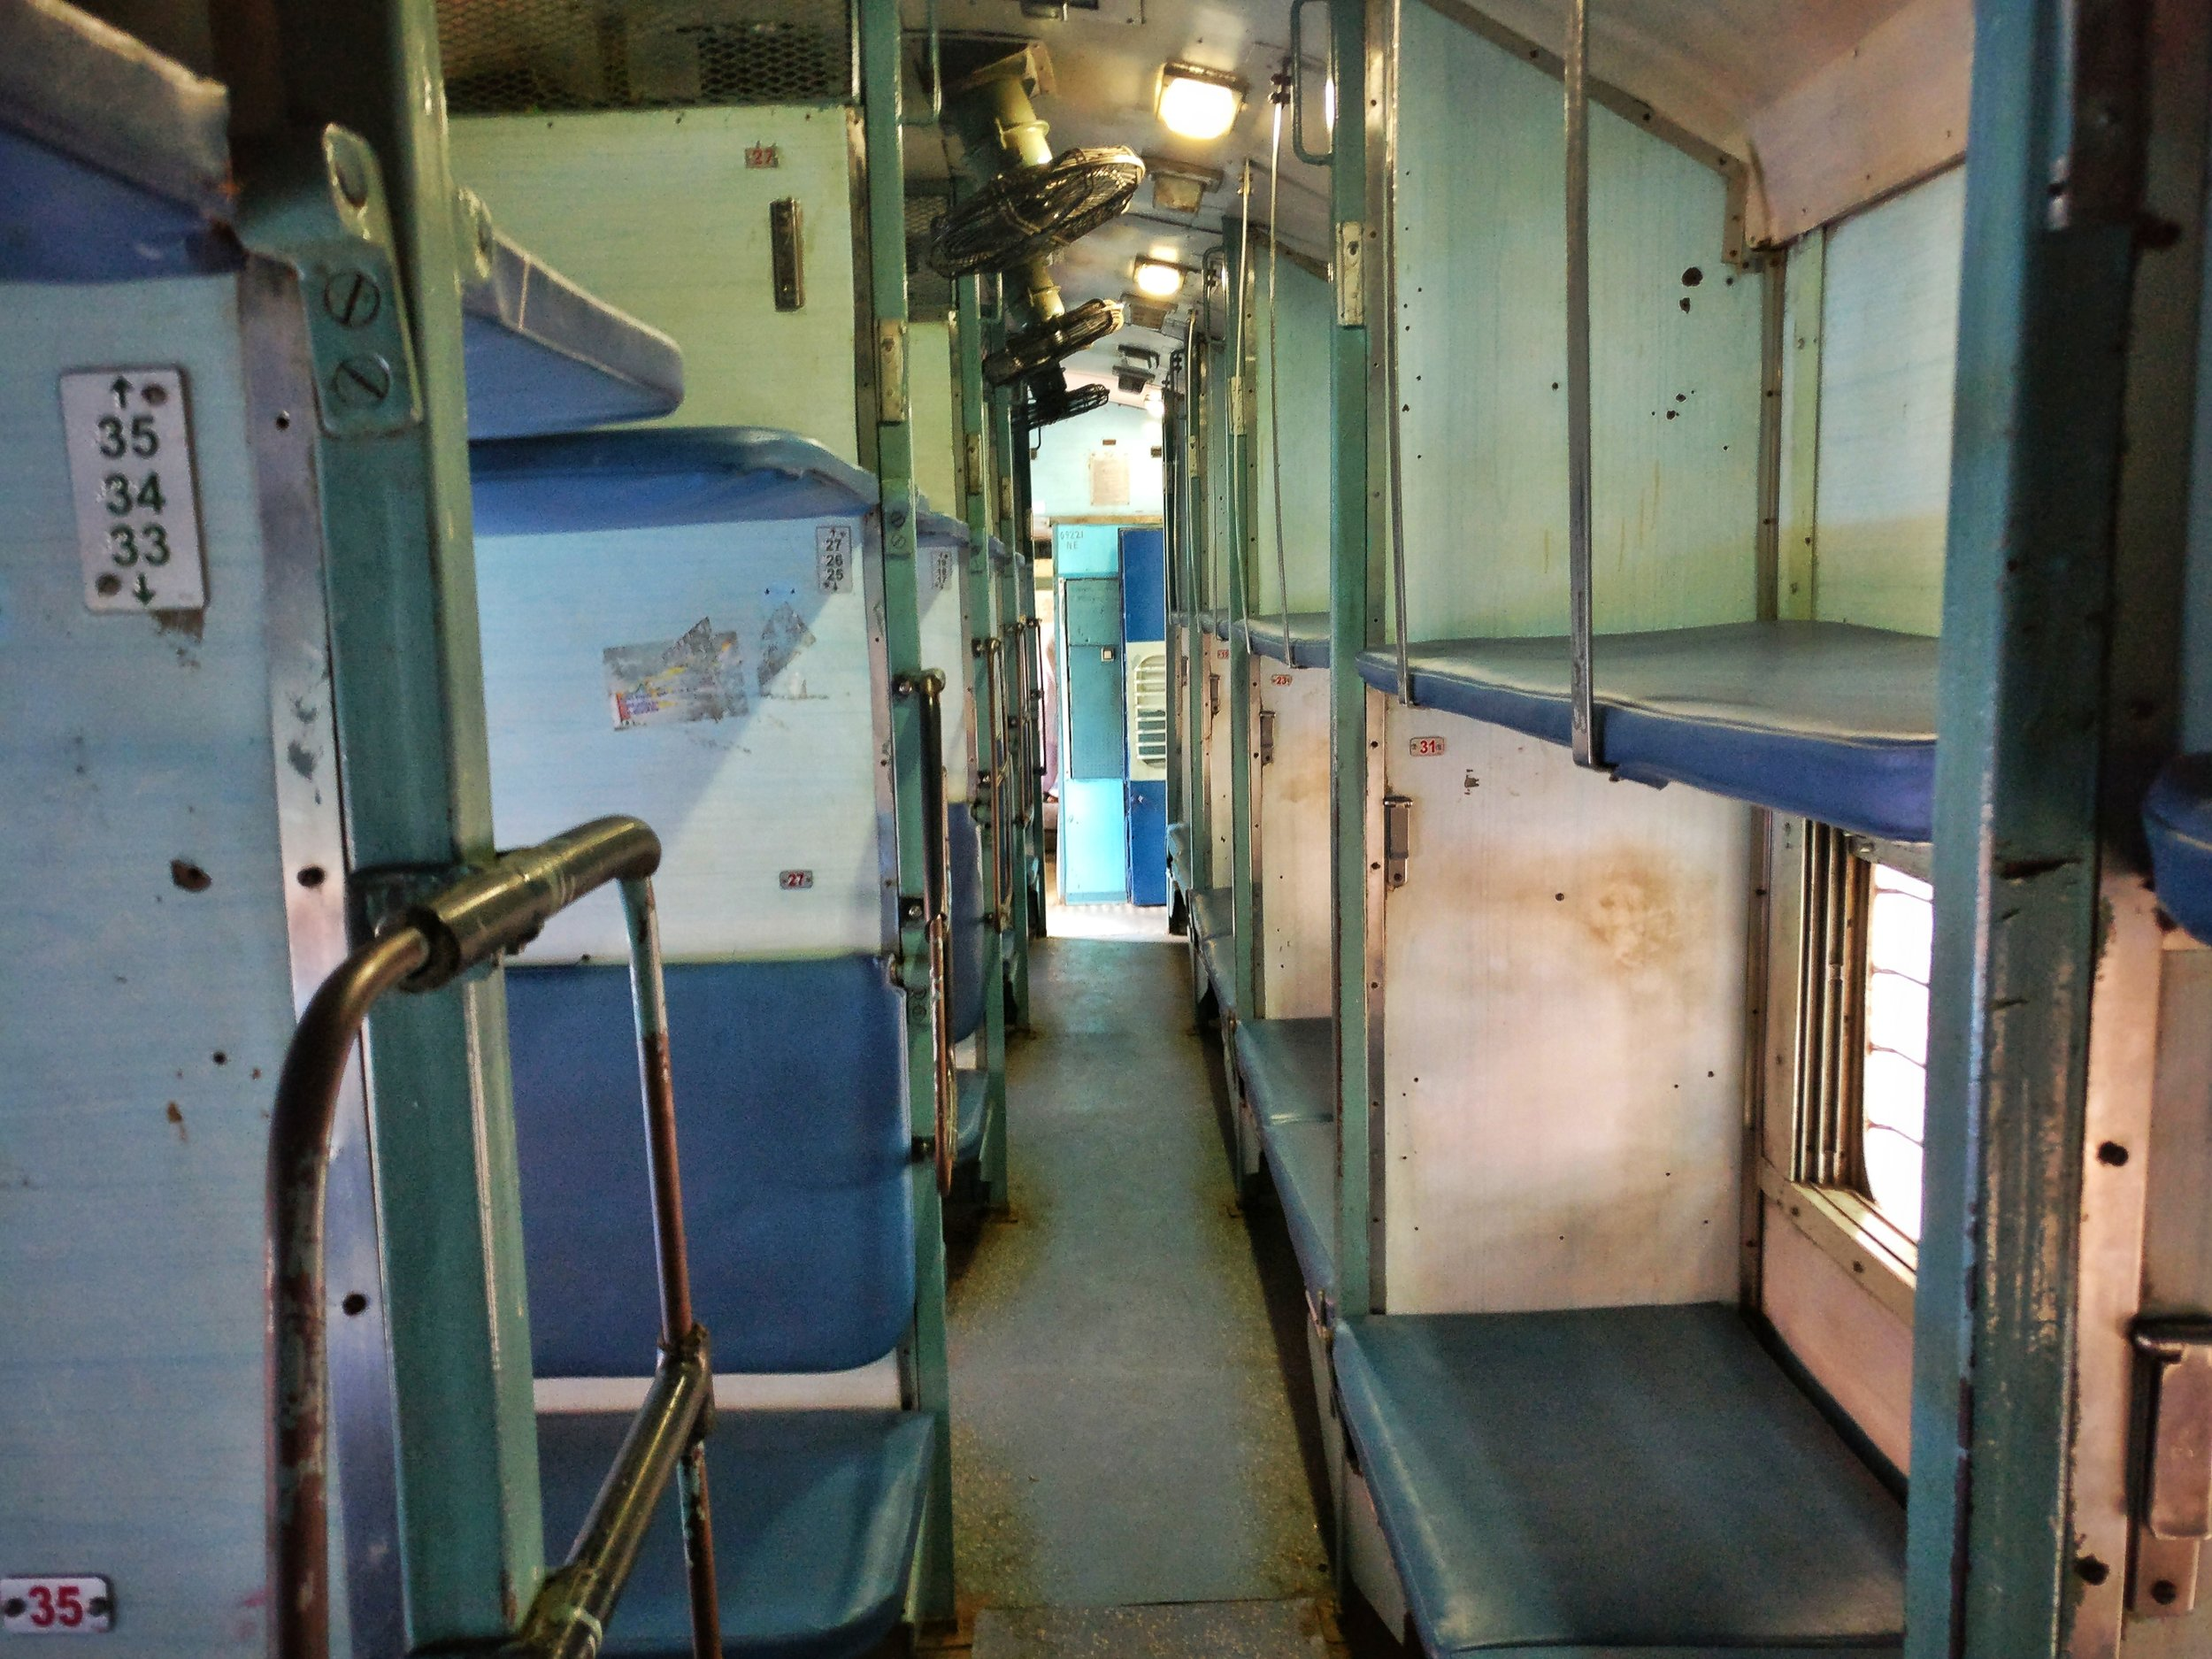 The train's emptied beds